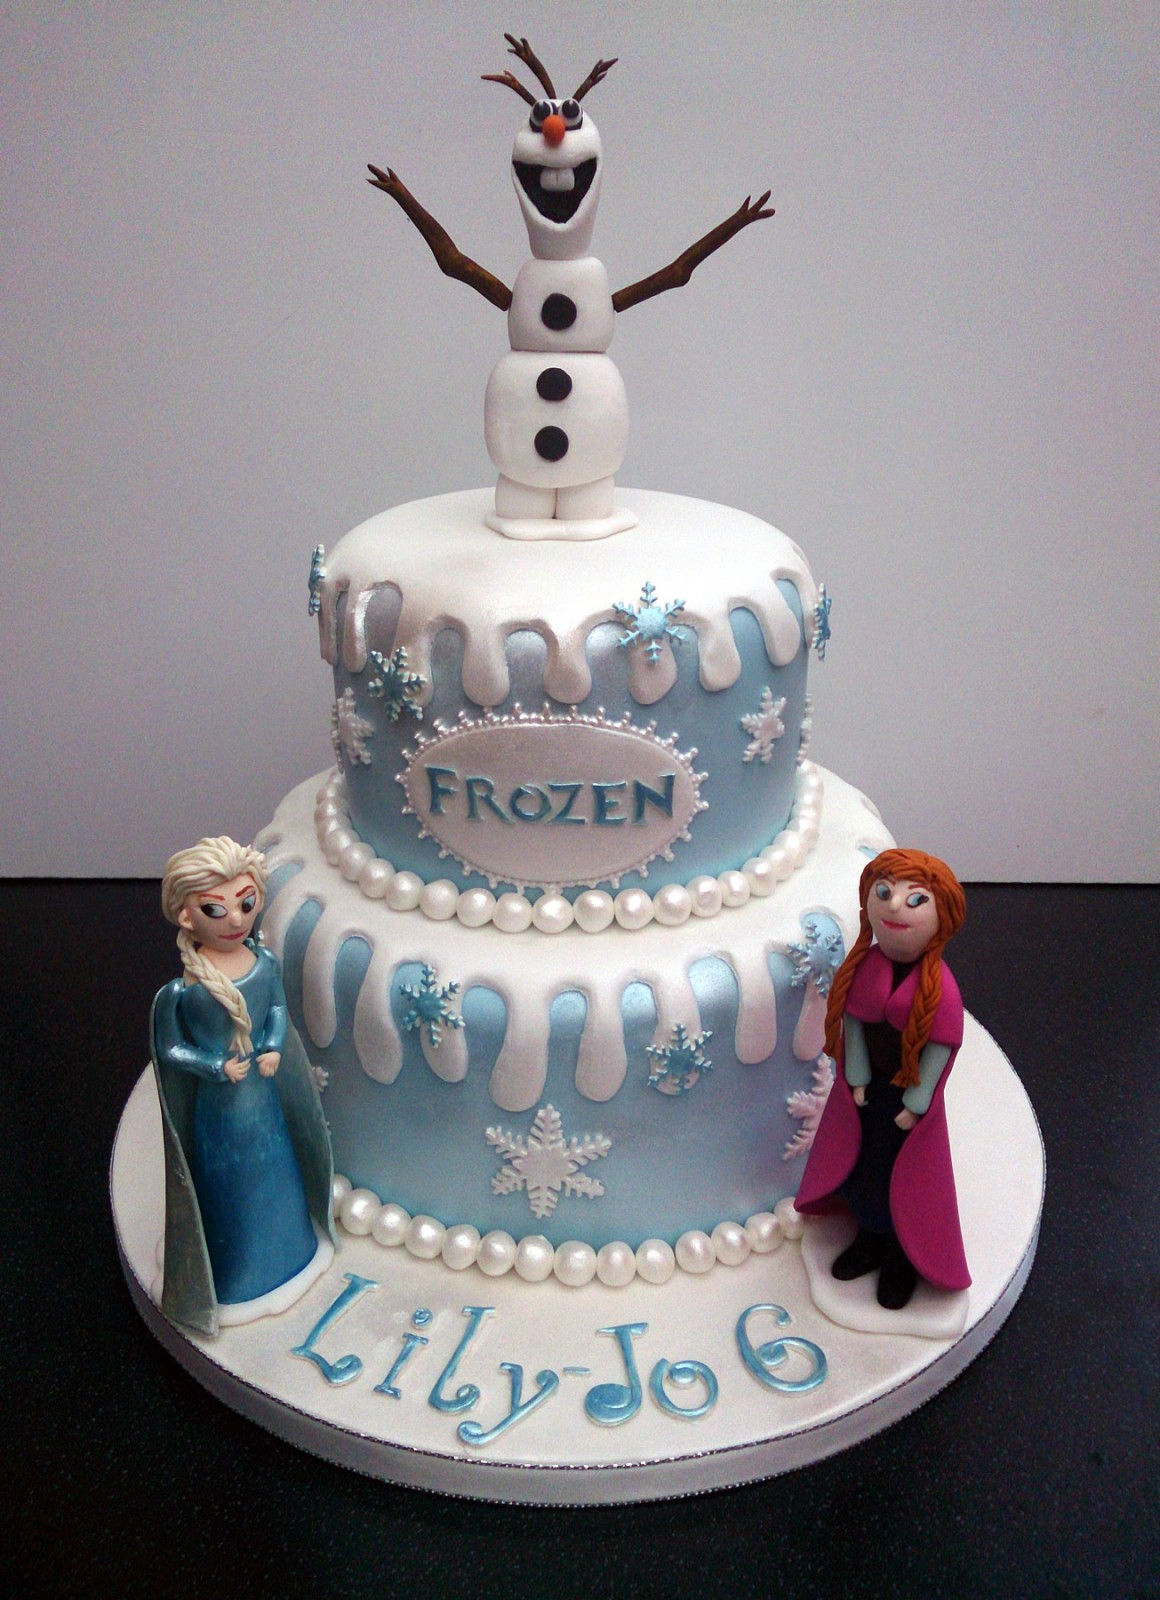 Disney Frozen Themed Cake With Olaf Anna and Elsa Susies Cakes